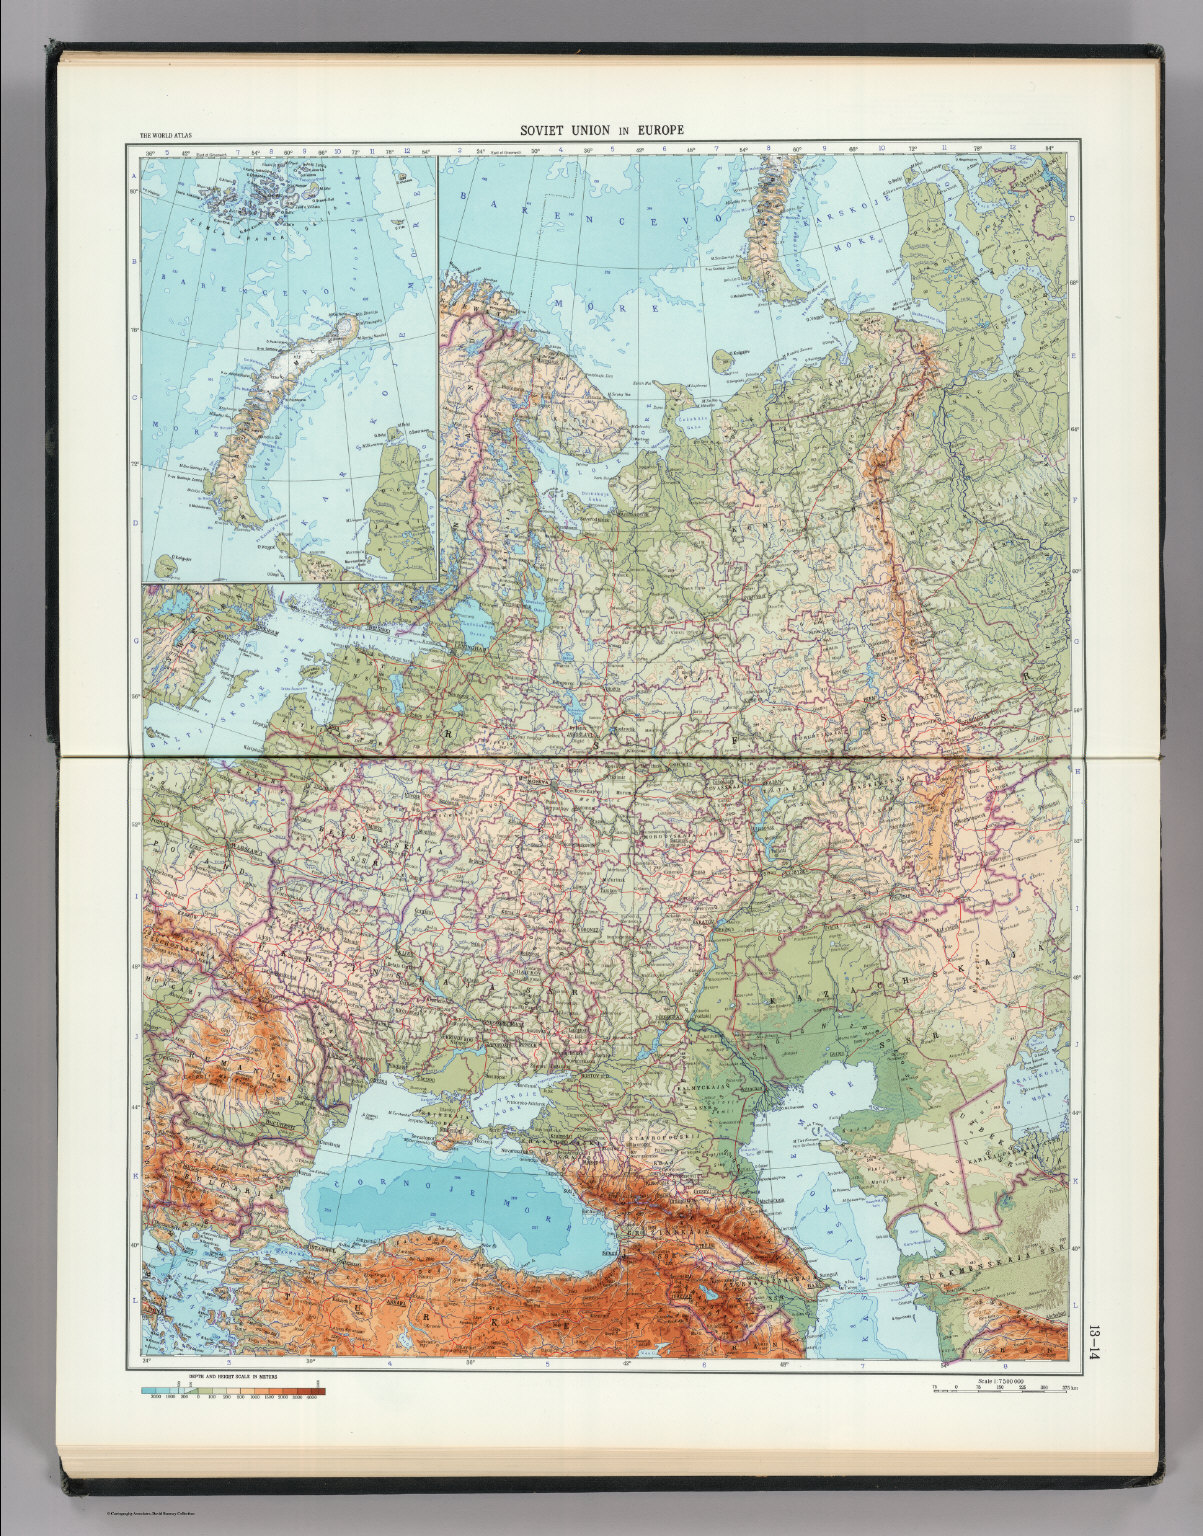 13 14  Soviet Union in Europe  The World Atlas    David Rumsey     Soviet Union in Europe  The World Atlas